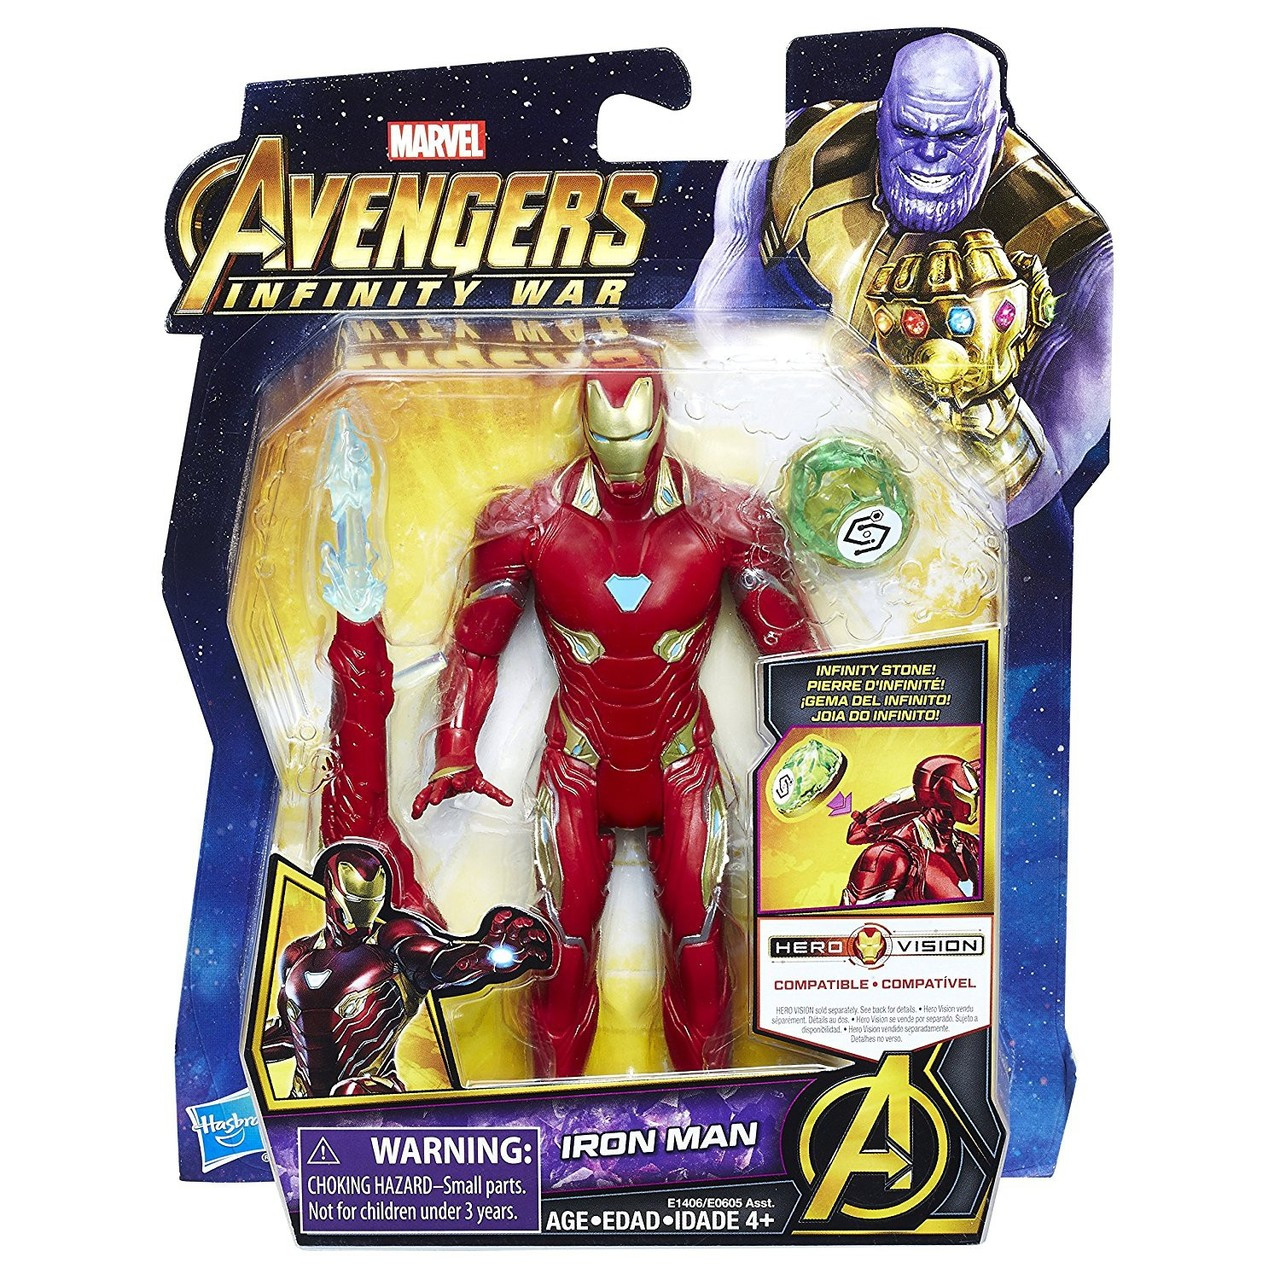 1/12 Scale Action Figure Accessory Iron Man Acrylic Hall